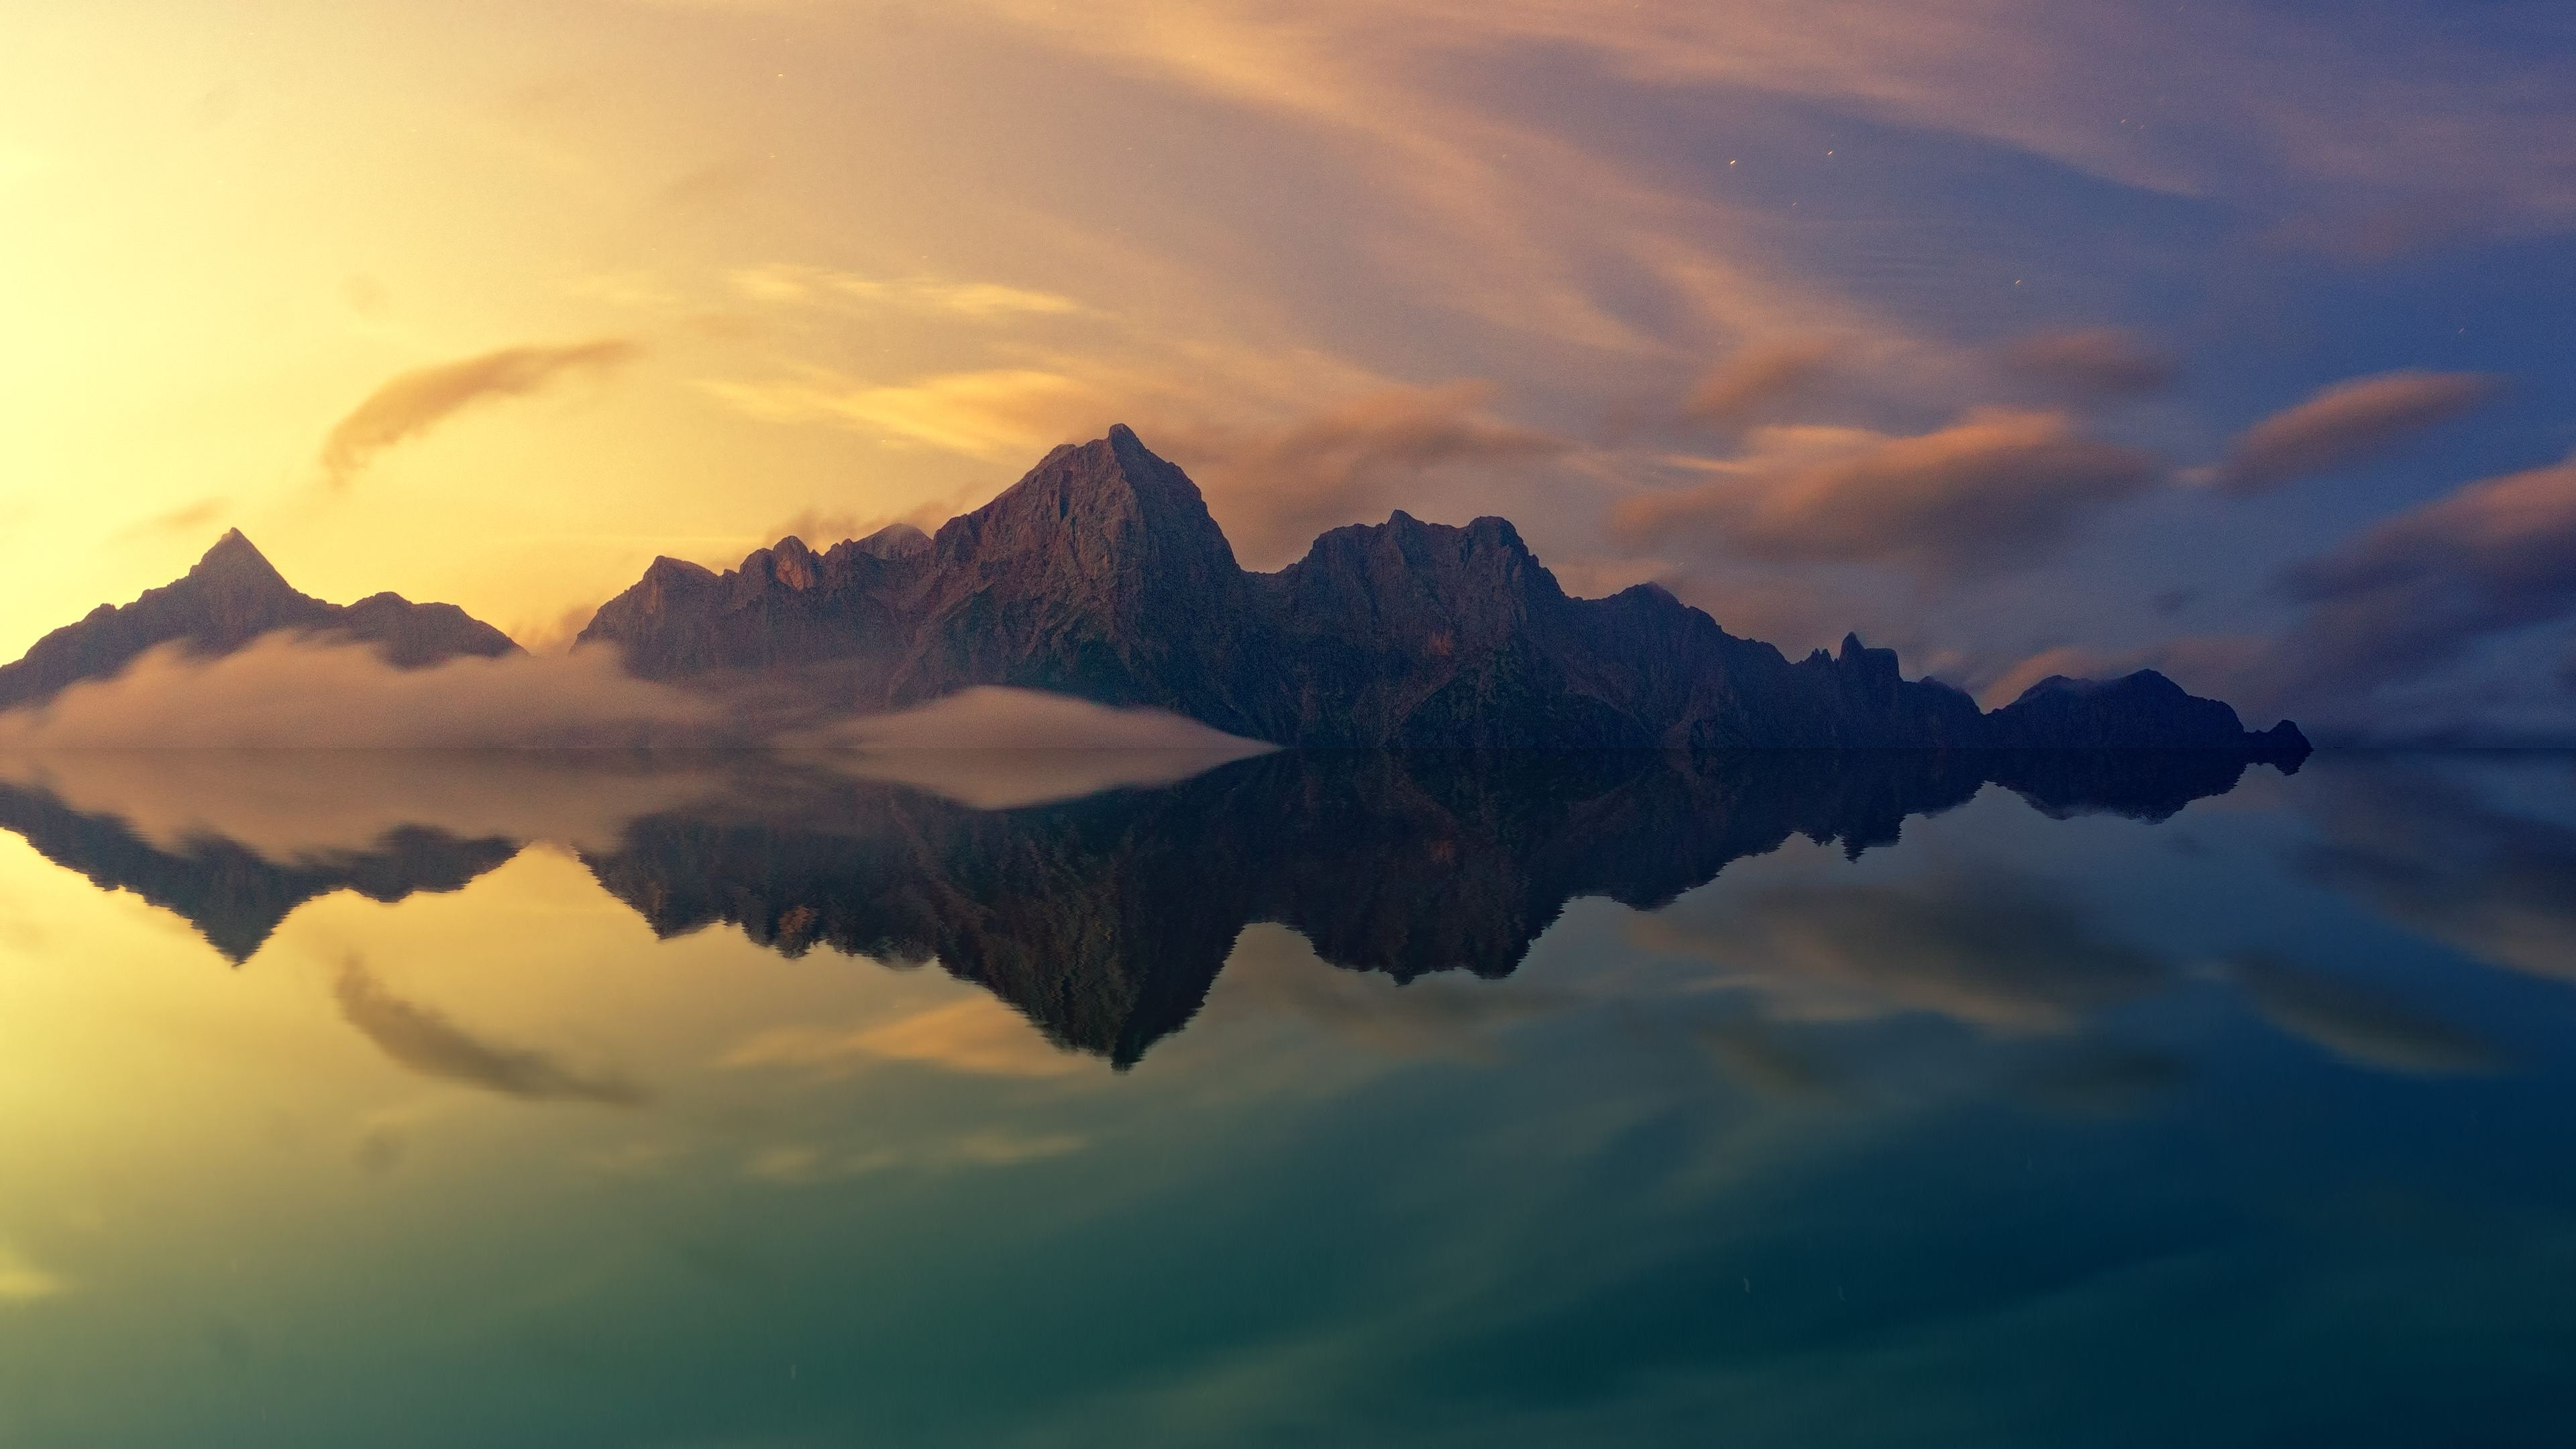 beautiful mountains clear reflection in water 4k 1540136522 - Beautiful Mountains Clear Reflection In Water 4k - water wallpapers, reflection wallpapers, nature wallpapers, mountains wallpapers, hd-wallpapers